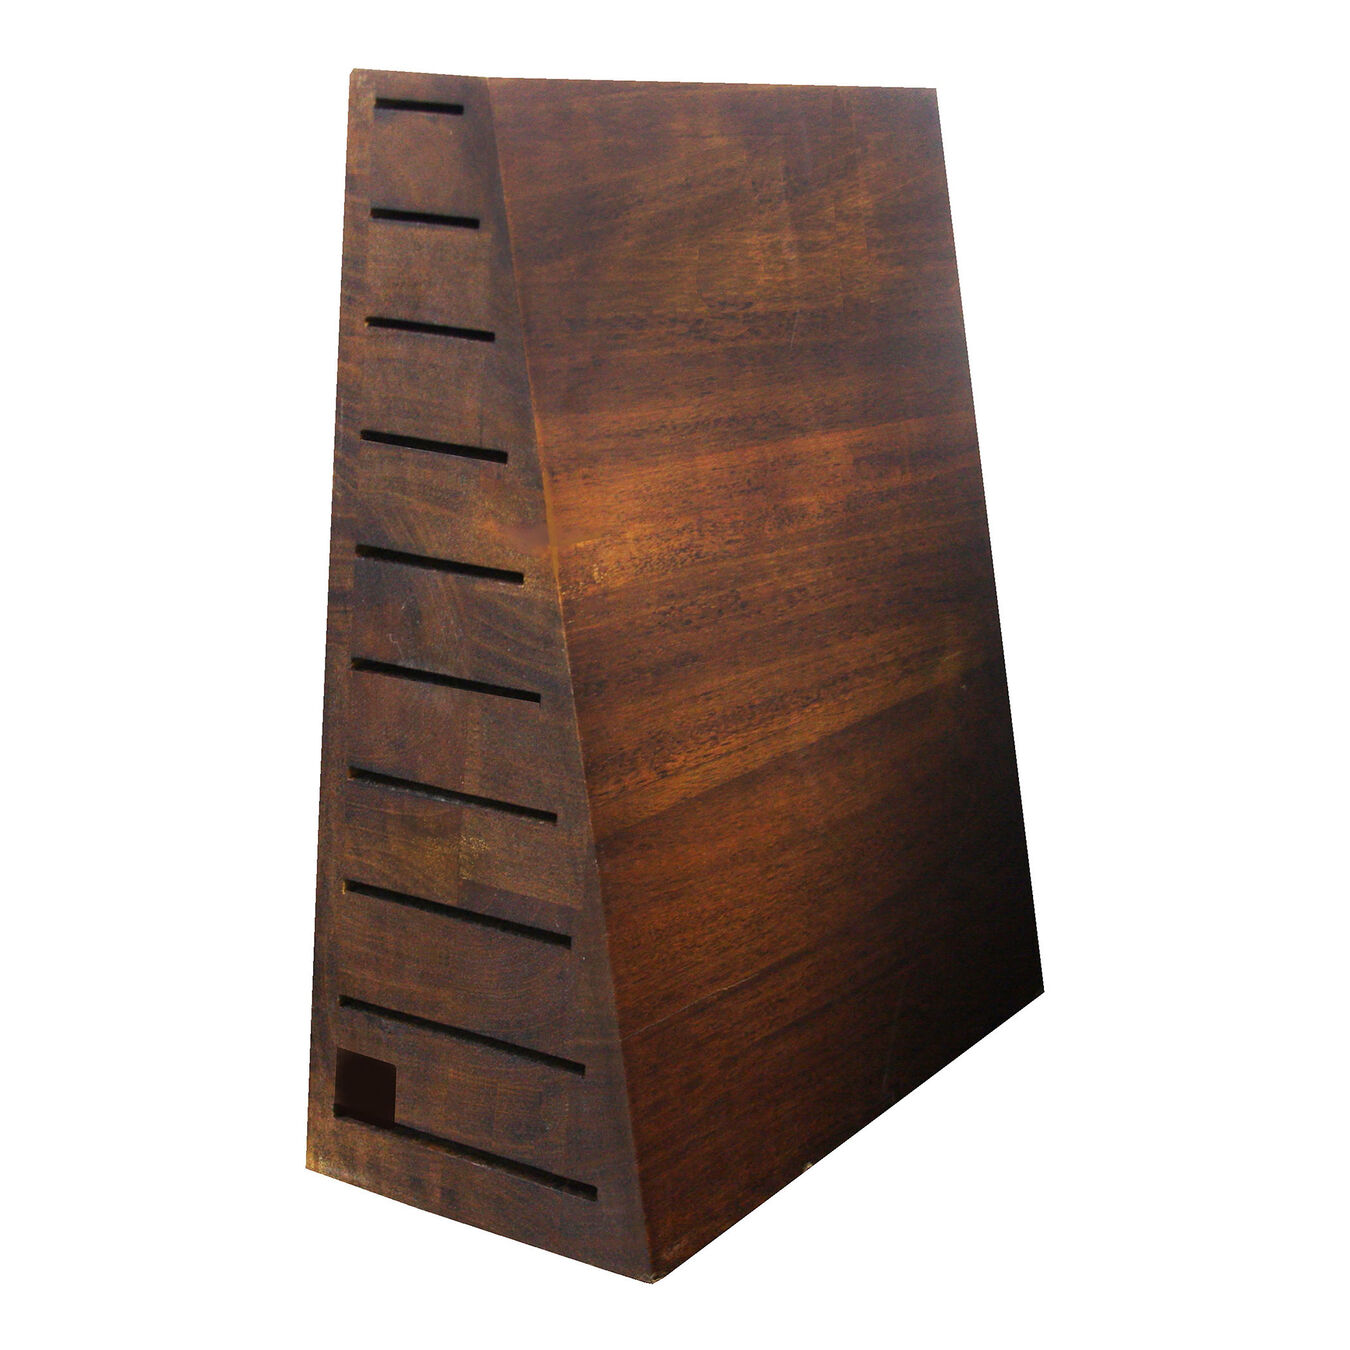 10, Add-on Block for Upright Easel Knife Block,,large 1